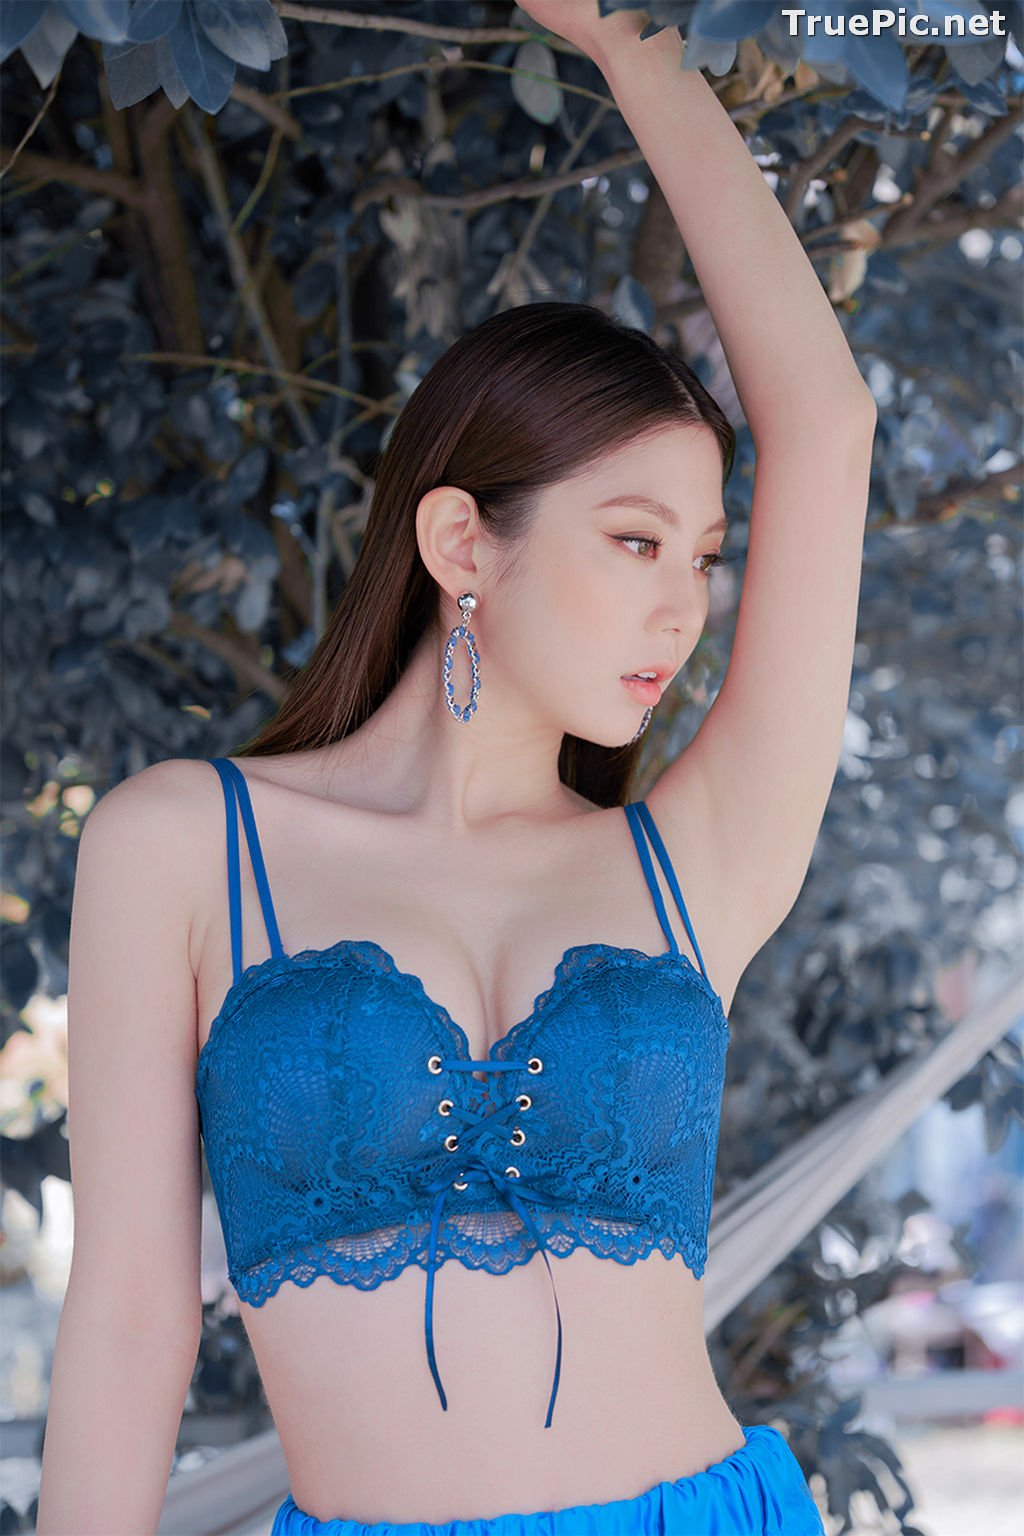 Image Korean Fashion Model – Lee Chae Eun (이채은) – Come On Vincent Lingerie #5 - TruePic.net - Picture-9